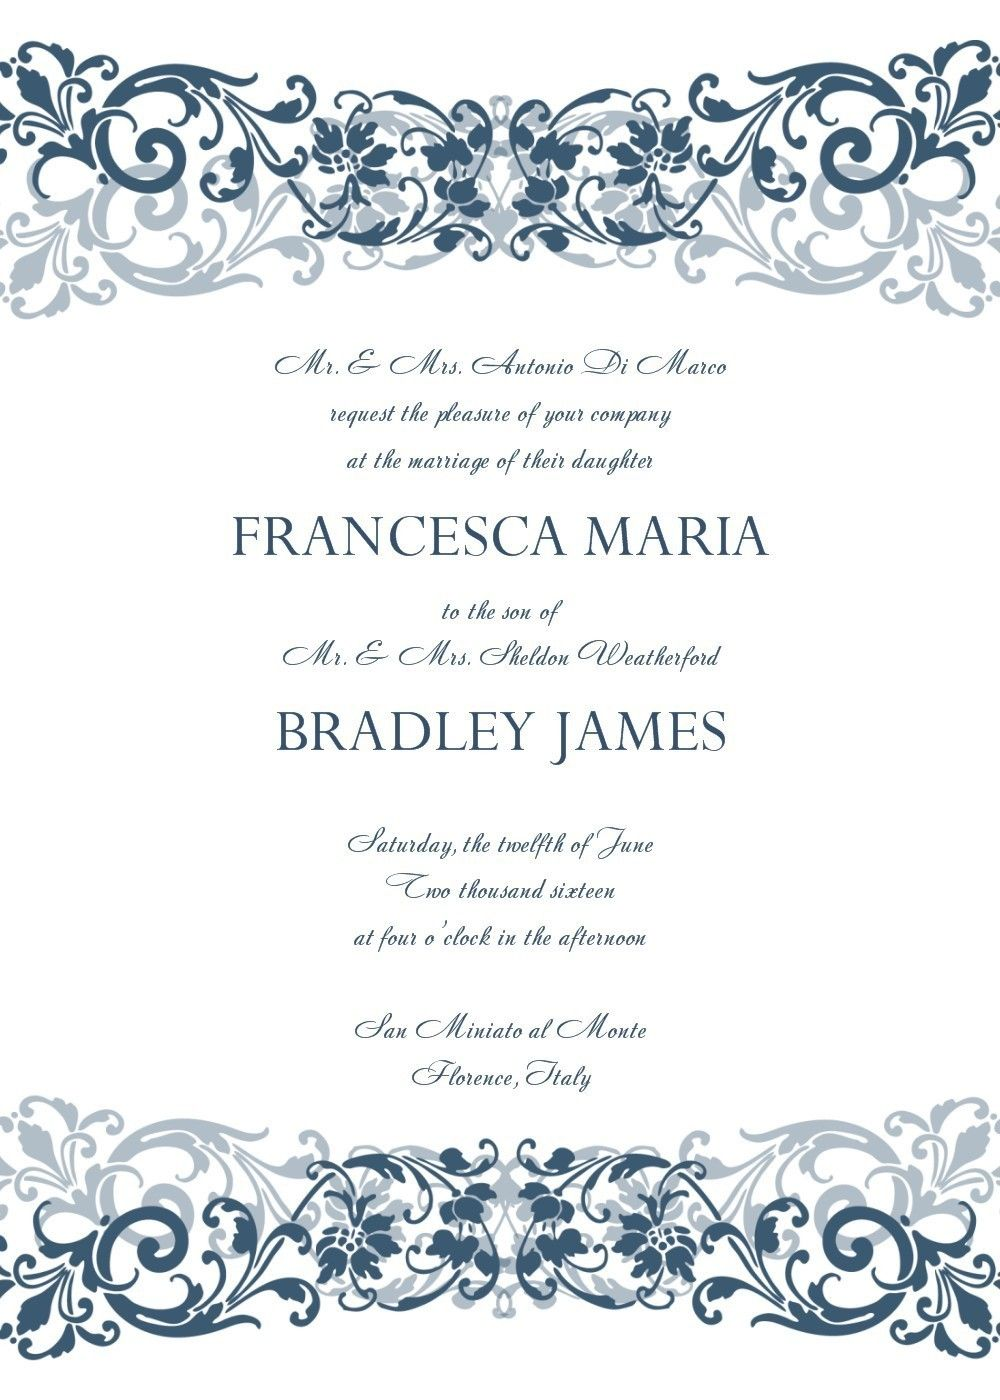 invitation templates word free